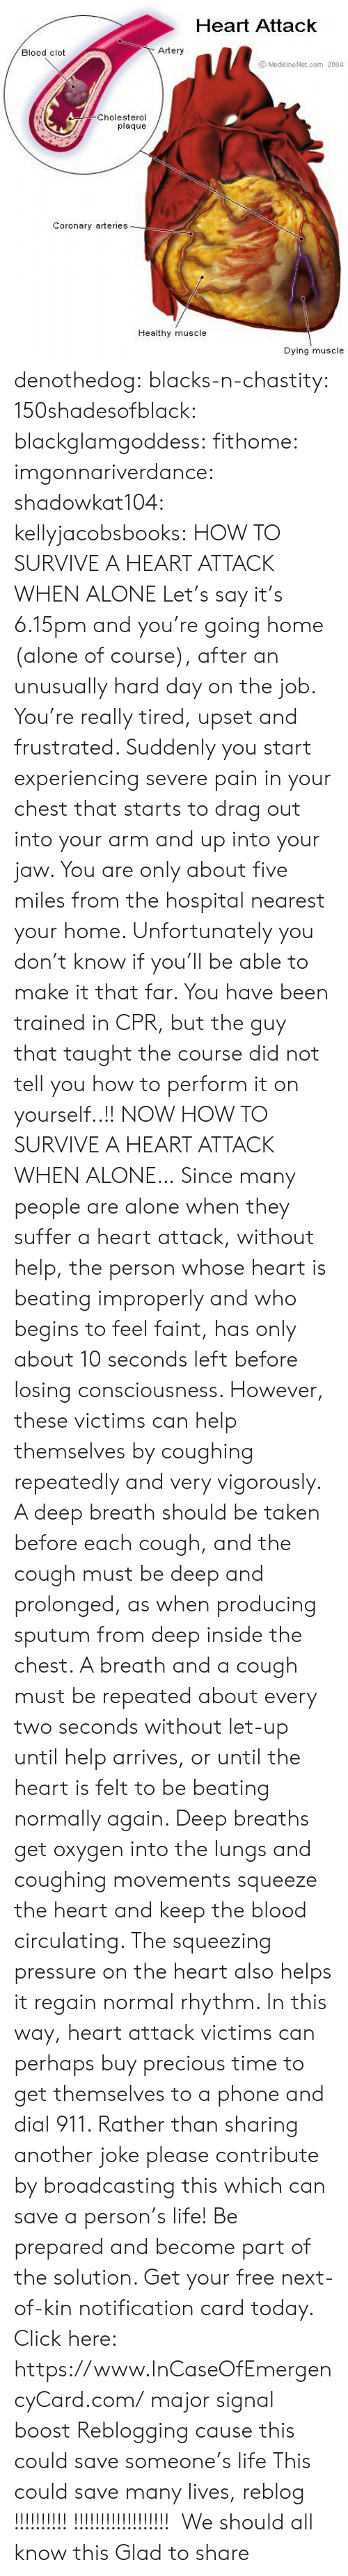 Being Alone, Click, and Facebook: Heart Attack  Blood clot  Artery  Medicine Net.com 2004  Cholesterol  plaque  Coronary arteries_  Healthy muscle  Dying muscle denothedog: blacks-n-chastity:  150shadesofblack:  blackglamgoddess:  fithome:  imgonnariverdance:  shadowkat104:  kellyjacobsbooks:  HOW TO SURVIVE A HEART ATTACK WHEN ALONE Let's say it's 6.15pm and you're going home (alone of course), after an unusually hard day on the job. You're really tired, upset and frustrated. Suddenly you start experiencing severe pain in your chest that starts to drag out into your arm and up into your jaw. You are only about five miles from the hospital nearest your home. Unfortunately you don't know if you'll be able to make it that far. You have been trained in CPR, but the guy that taught the course did not tell you how to perform it on yourself..!! NOW HOW TO SURVIVE A HEART ATTACK WHEN ALONE… Since many people are alone when they suffer a heart attack, without help, the person whose heart is beating improperly and who begins to feel faint, has only about 10 seconds left before losing consciousness. However, these victims can help themselves by coughing repeatedly and very vigorously. A deep breath should be taken before each cough, and the cough must be deep and prolonged, as when producing sputum from deep inside the chest. A breath and a cough must be repeated about every two seconds without let-up until help arrives, or until the heart is felt to be beating normally again. Deep breaths get oxygen into the lungs and coughing movements squeeze the heart and keep the blood circulating. The squeezing pressure on the heart also helps it regain normal rhythm. In this way, heart attack victims can perhaps buy precious time to get themselves to a phone and dial 911. Rather than sharing another joke please contribute by broadcasting this which can save a person's life!  Be prepared and become part of the solution. Get your free next-of-kin notification card today. Click here: http